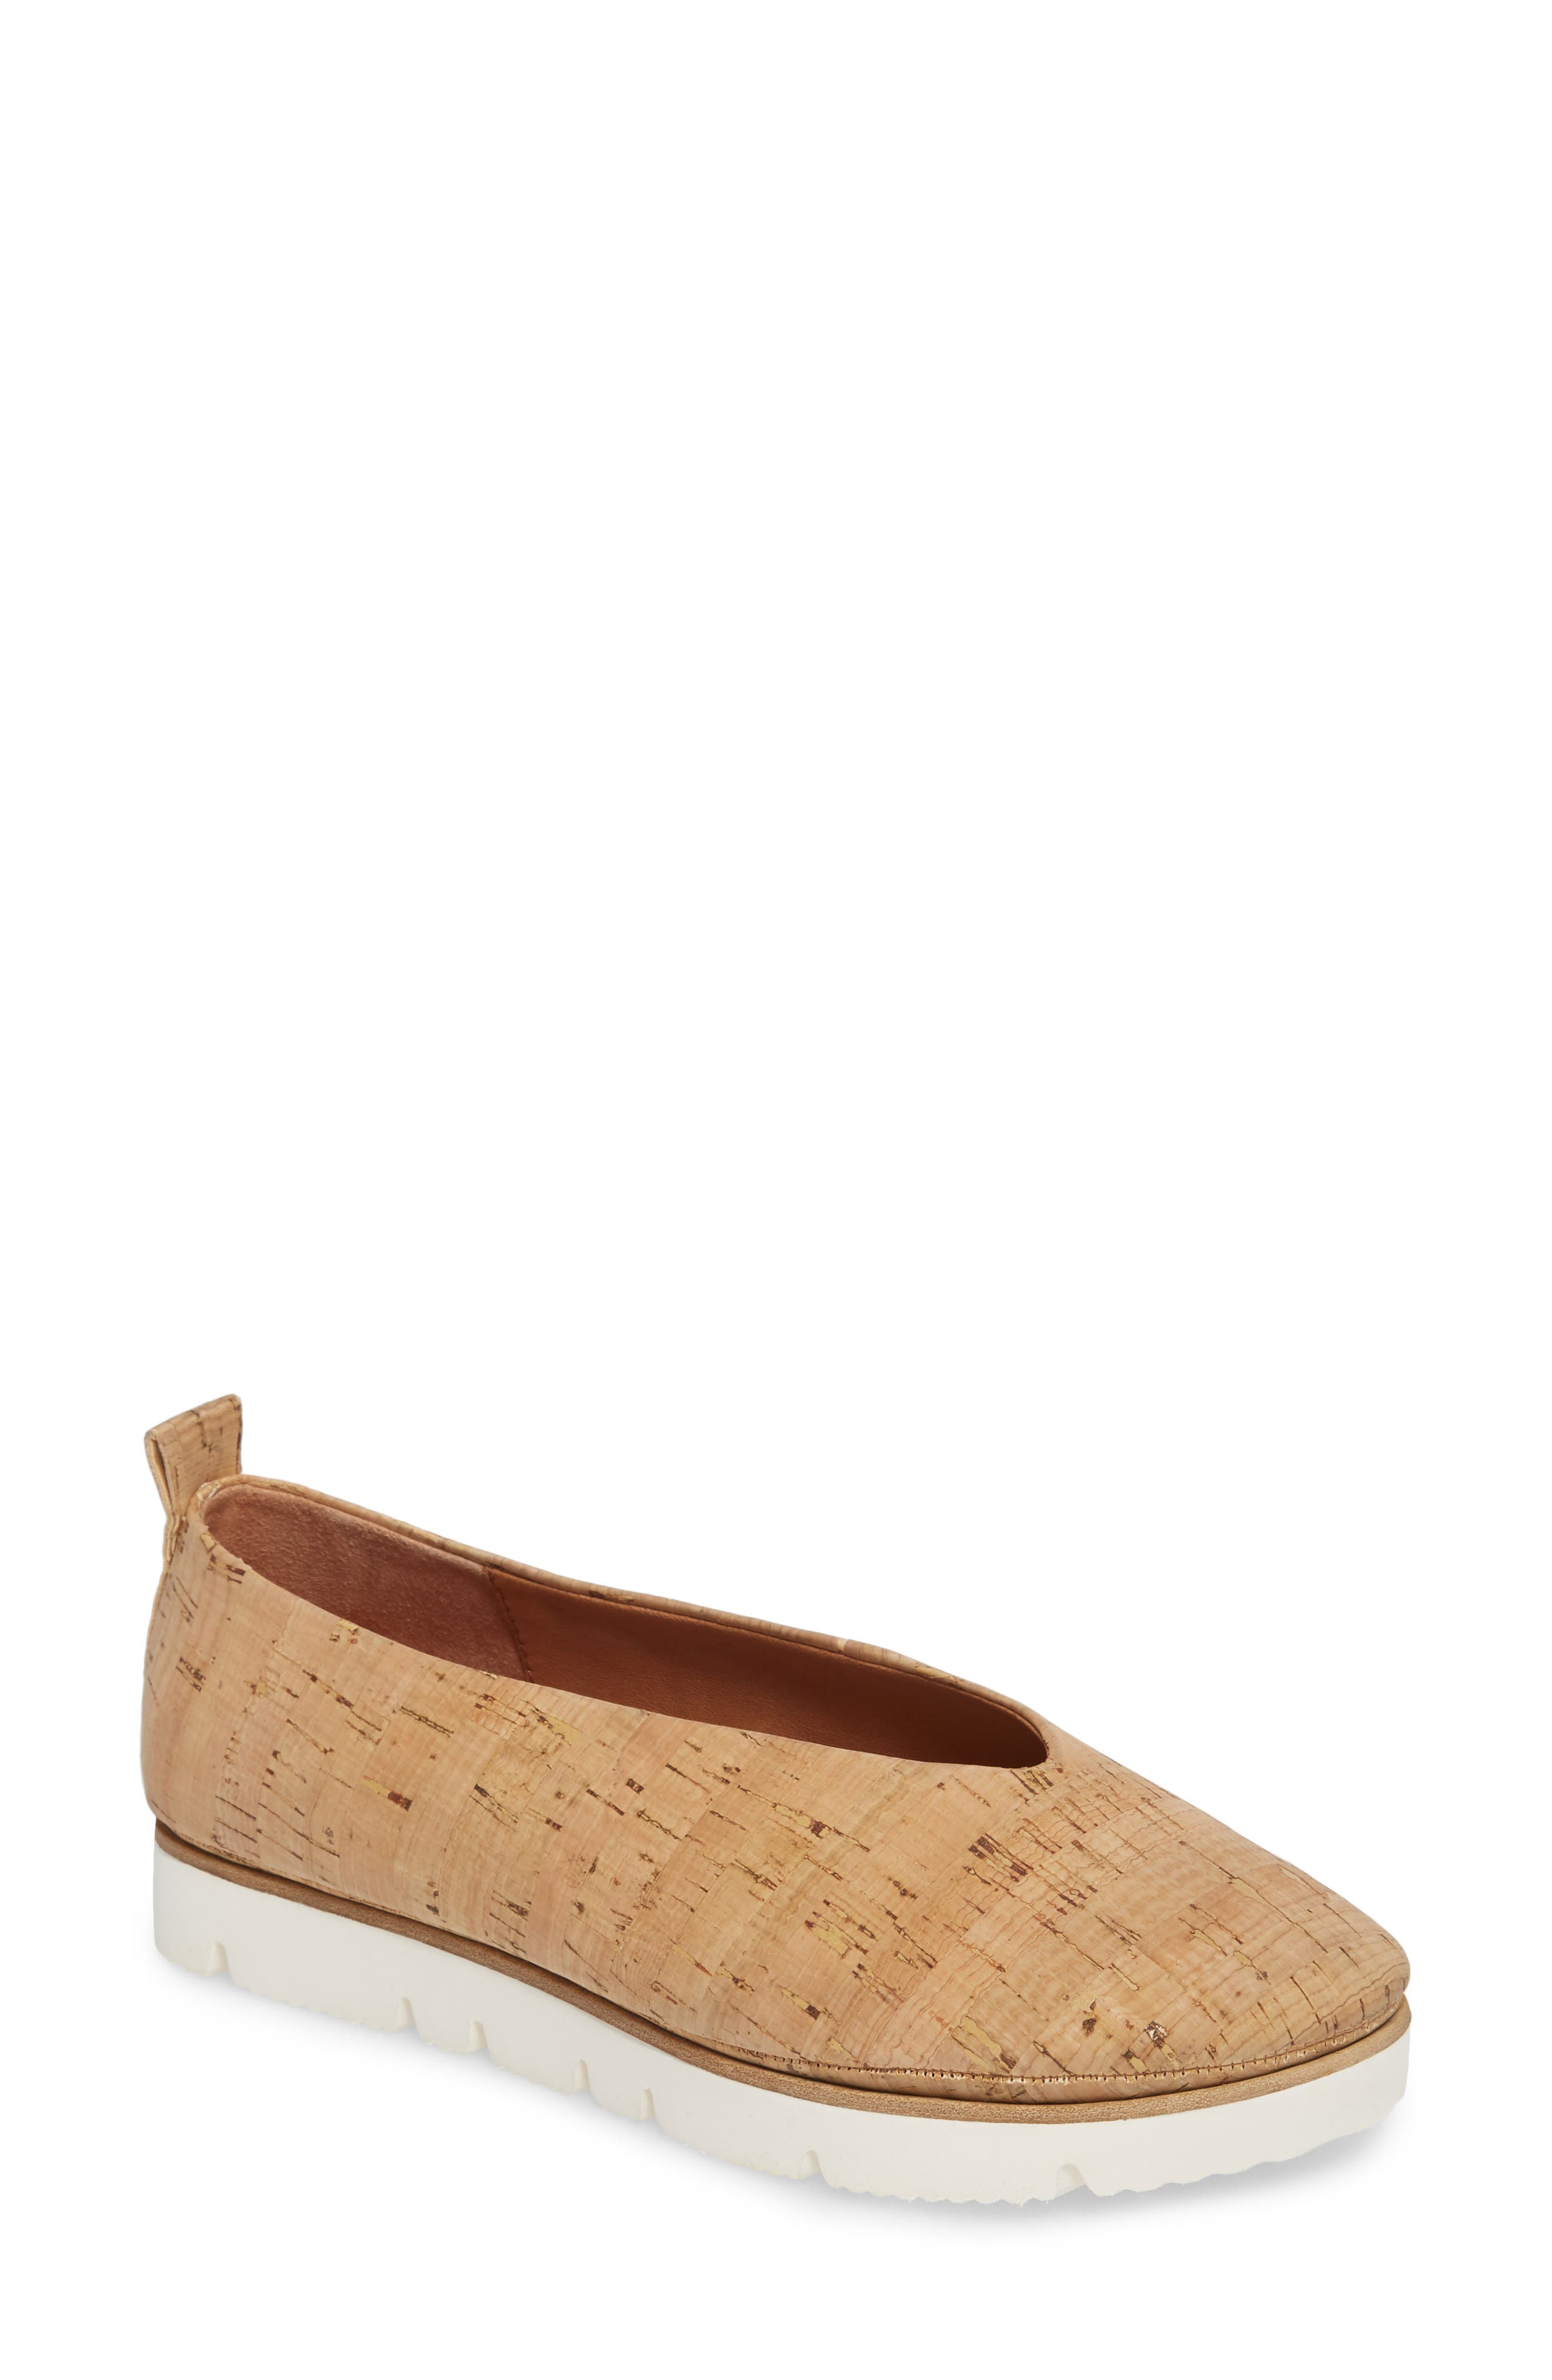 Demi Flat,                             Main thumbnail 1, color,                             NATURAL LEATHER